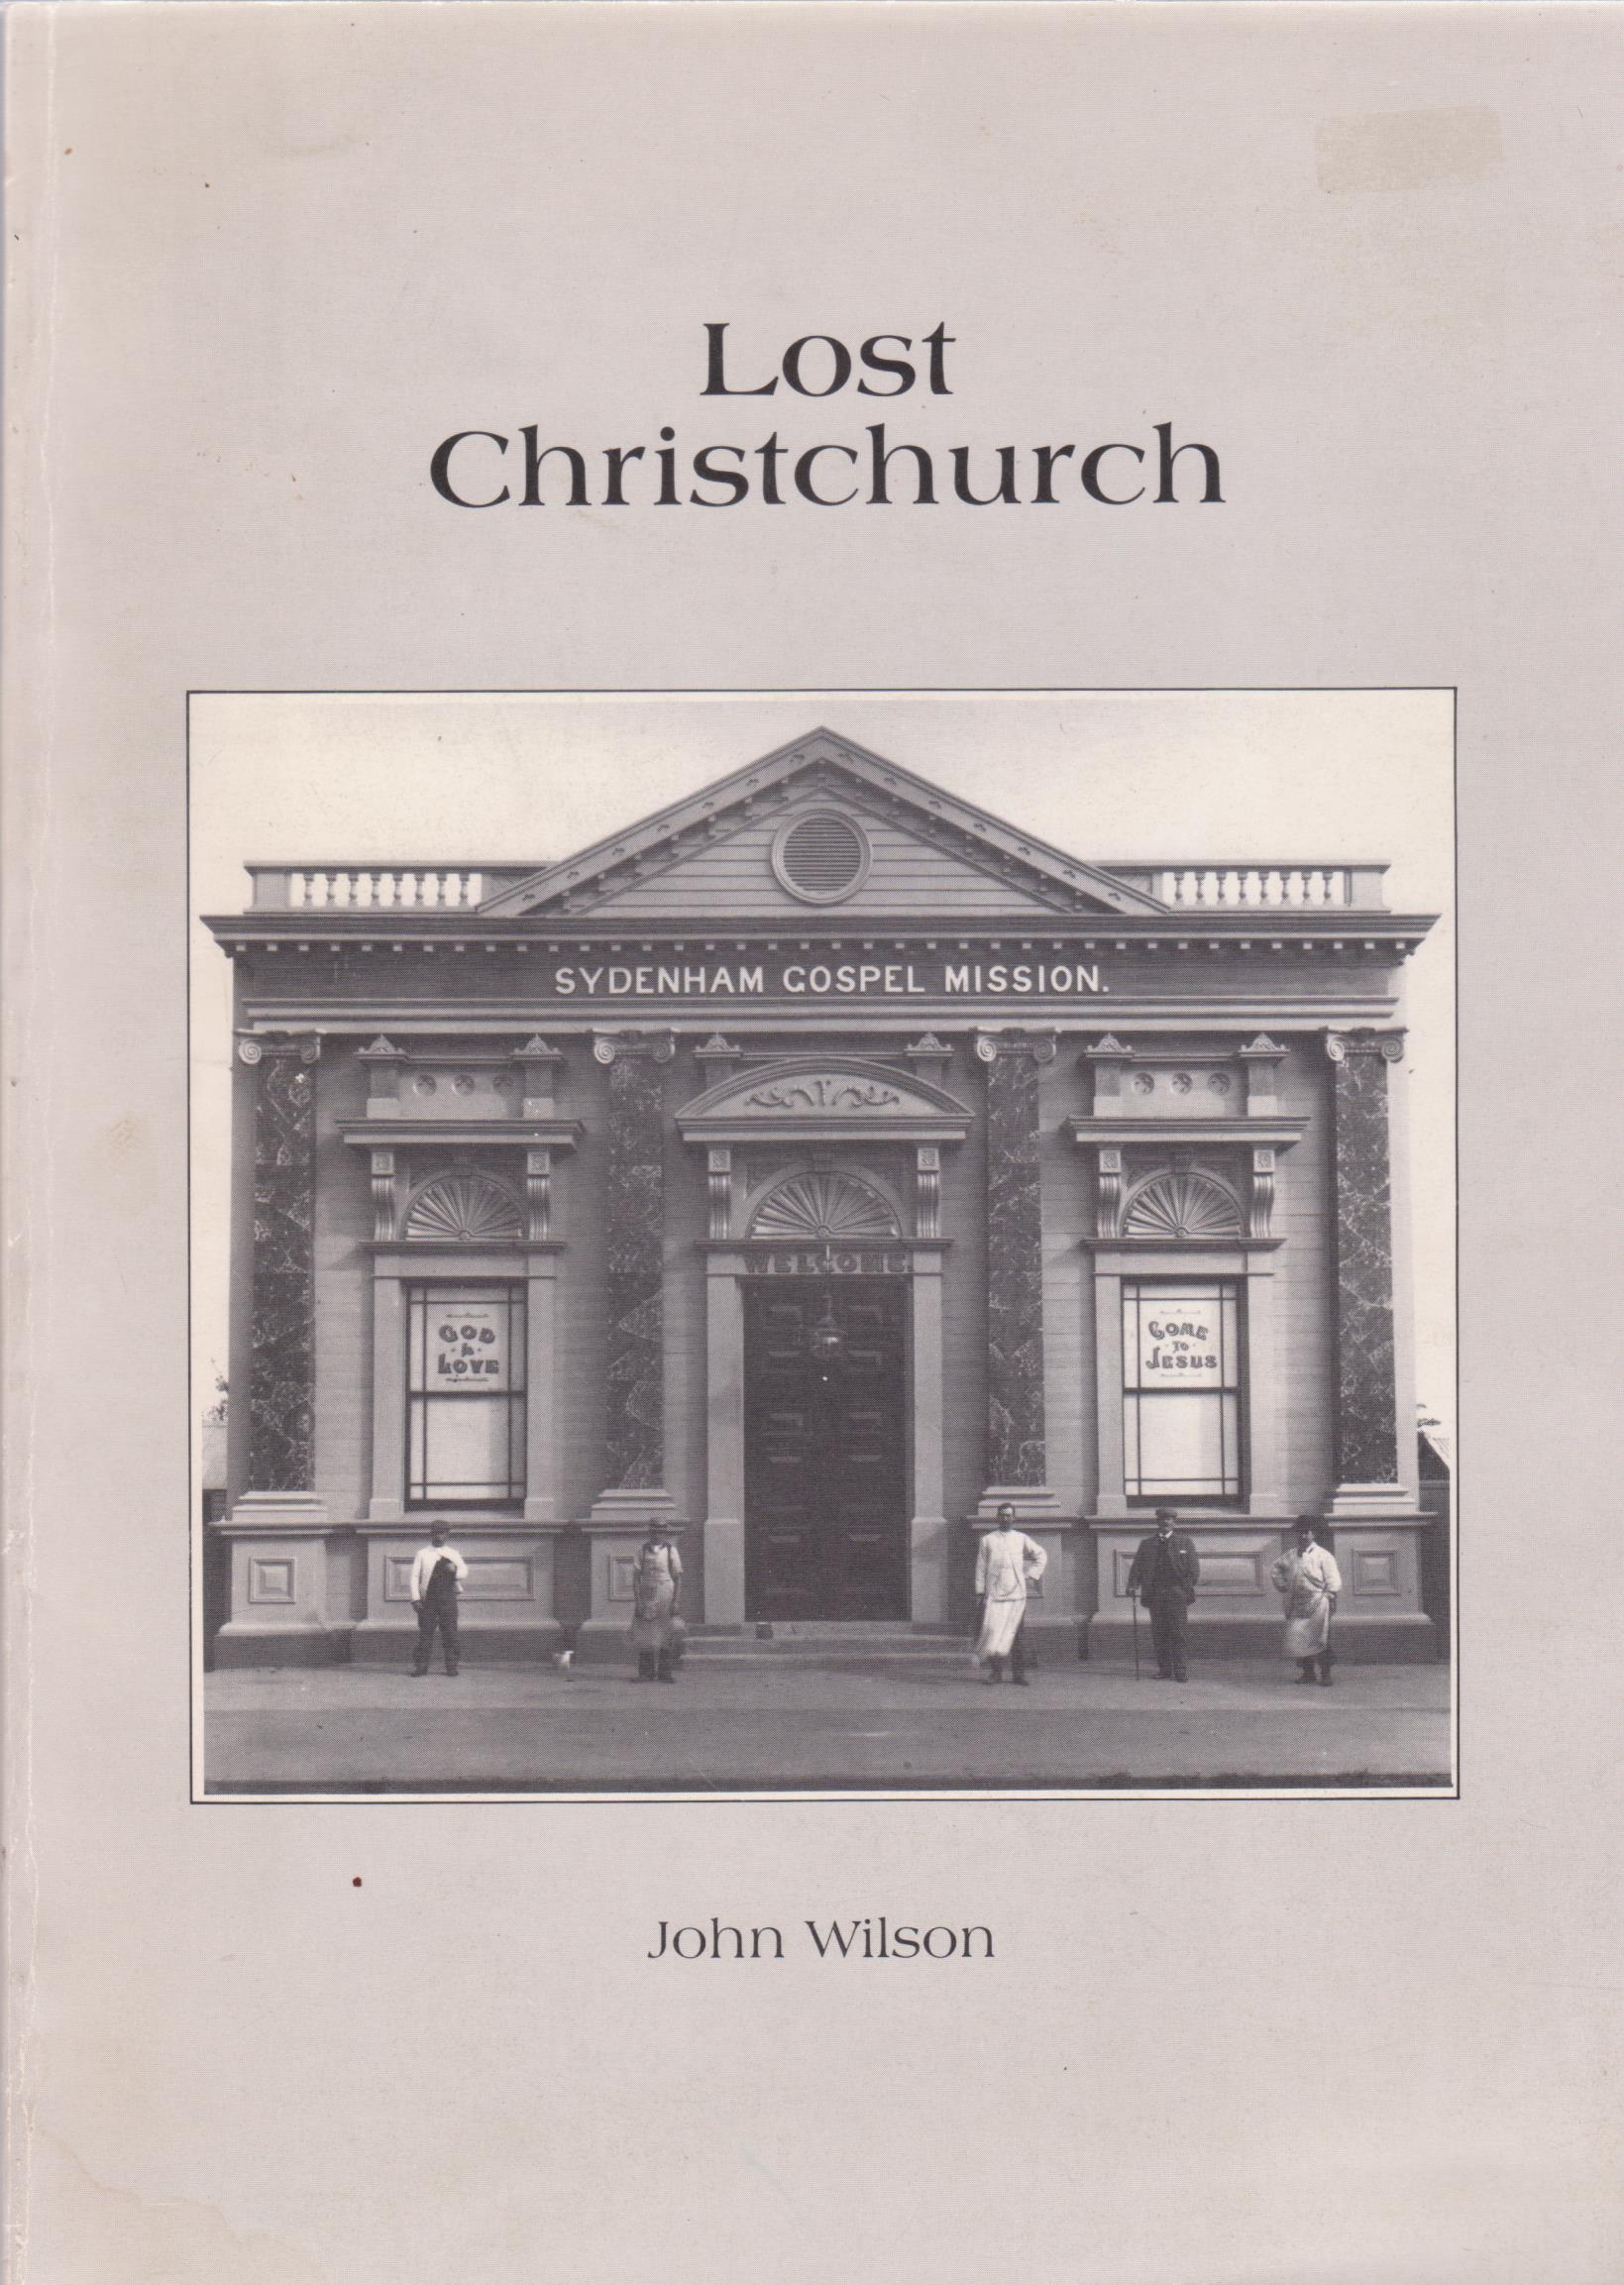 cover image of Lost Christchurch by John Wilson for sale in New Zealand